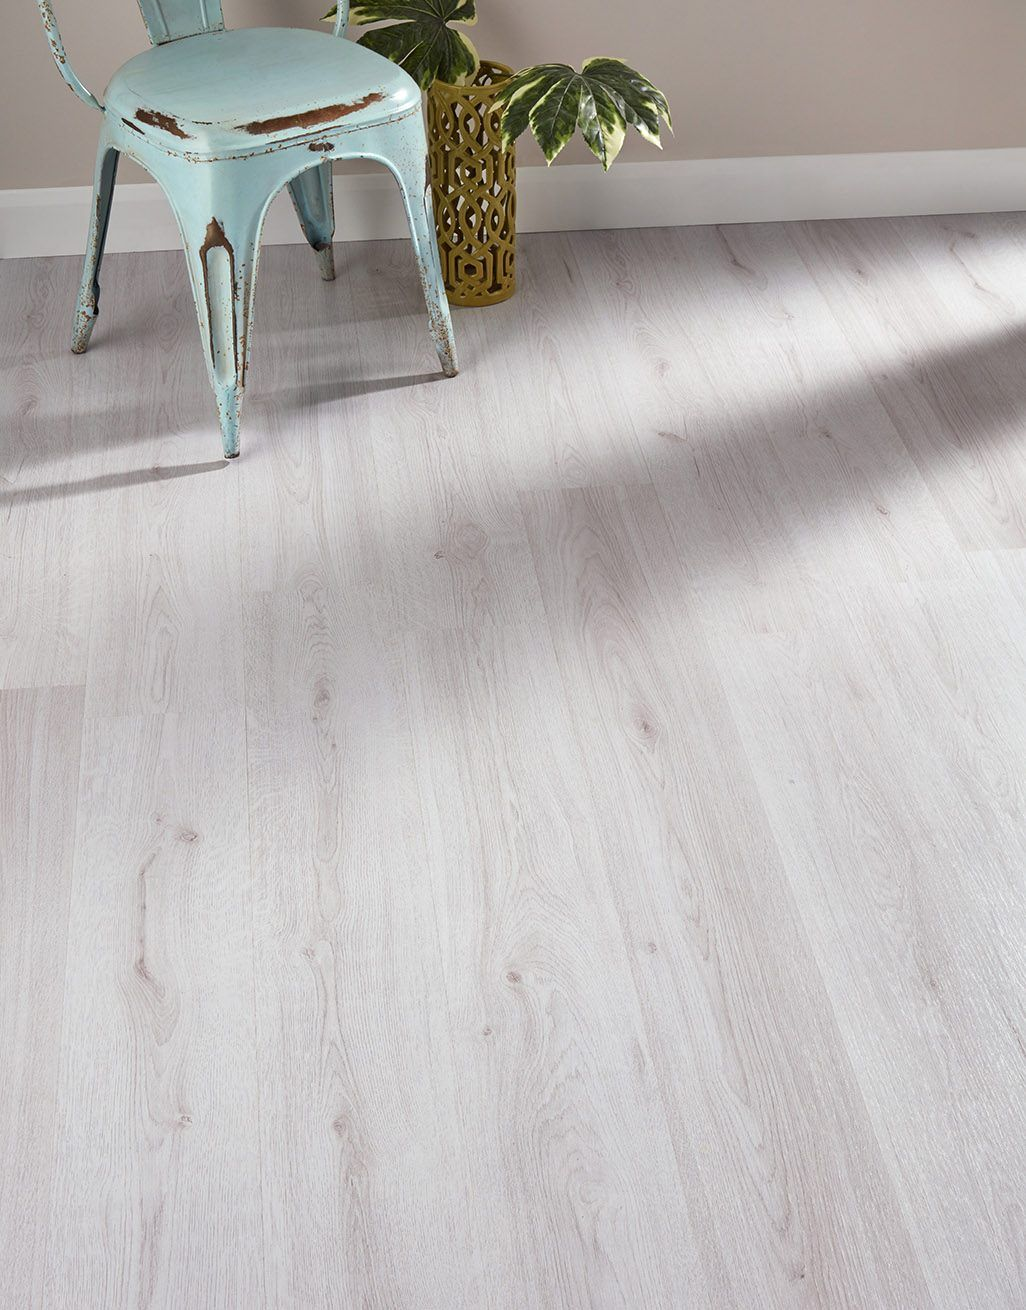 Studio White Laminate Flooring Direct Wood Flooring